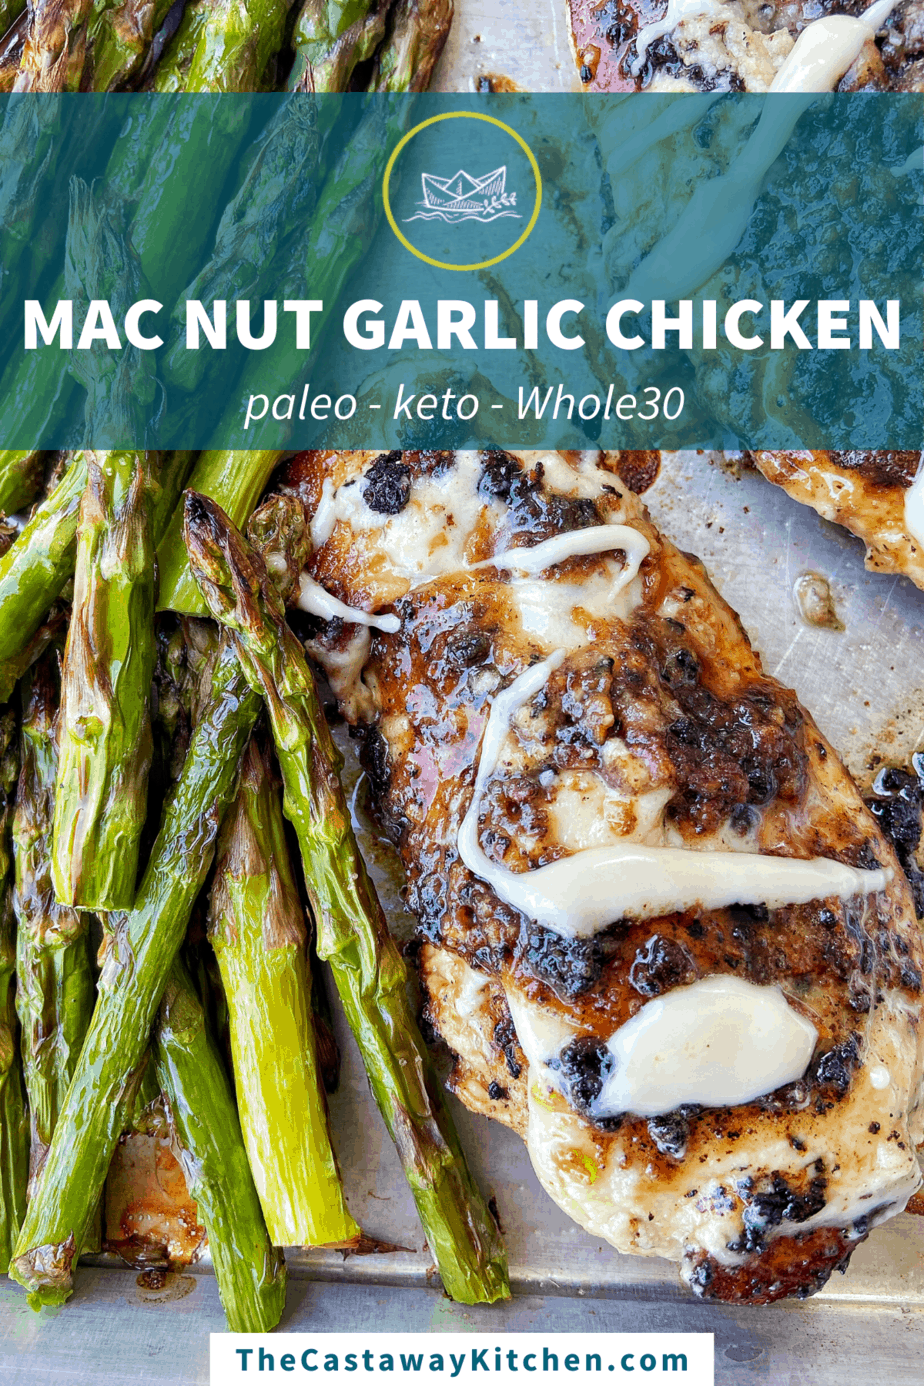 "Macadamia Nut Garlic Chicken, seared to perfection, sits on an aluminum baking sheet lined with parchment paper. The chicken is drizzled with macadamia nut butter and served alongside broiled asparagus. At the top of the image is a sheer dark teal banner with The Castaway Kitchen logo and a line of text that reads, ""MAC NUT GARLIC CHICKEN"". The second line of text reads ""paleo - keto - Whole30"" with a text box at the bottom of the image that reads ""TheCastawayKitchen.com"""